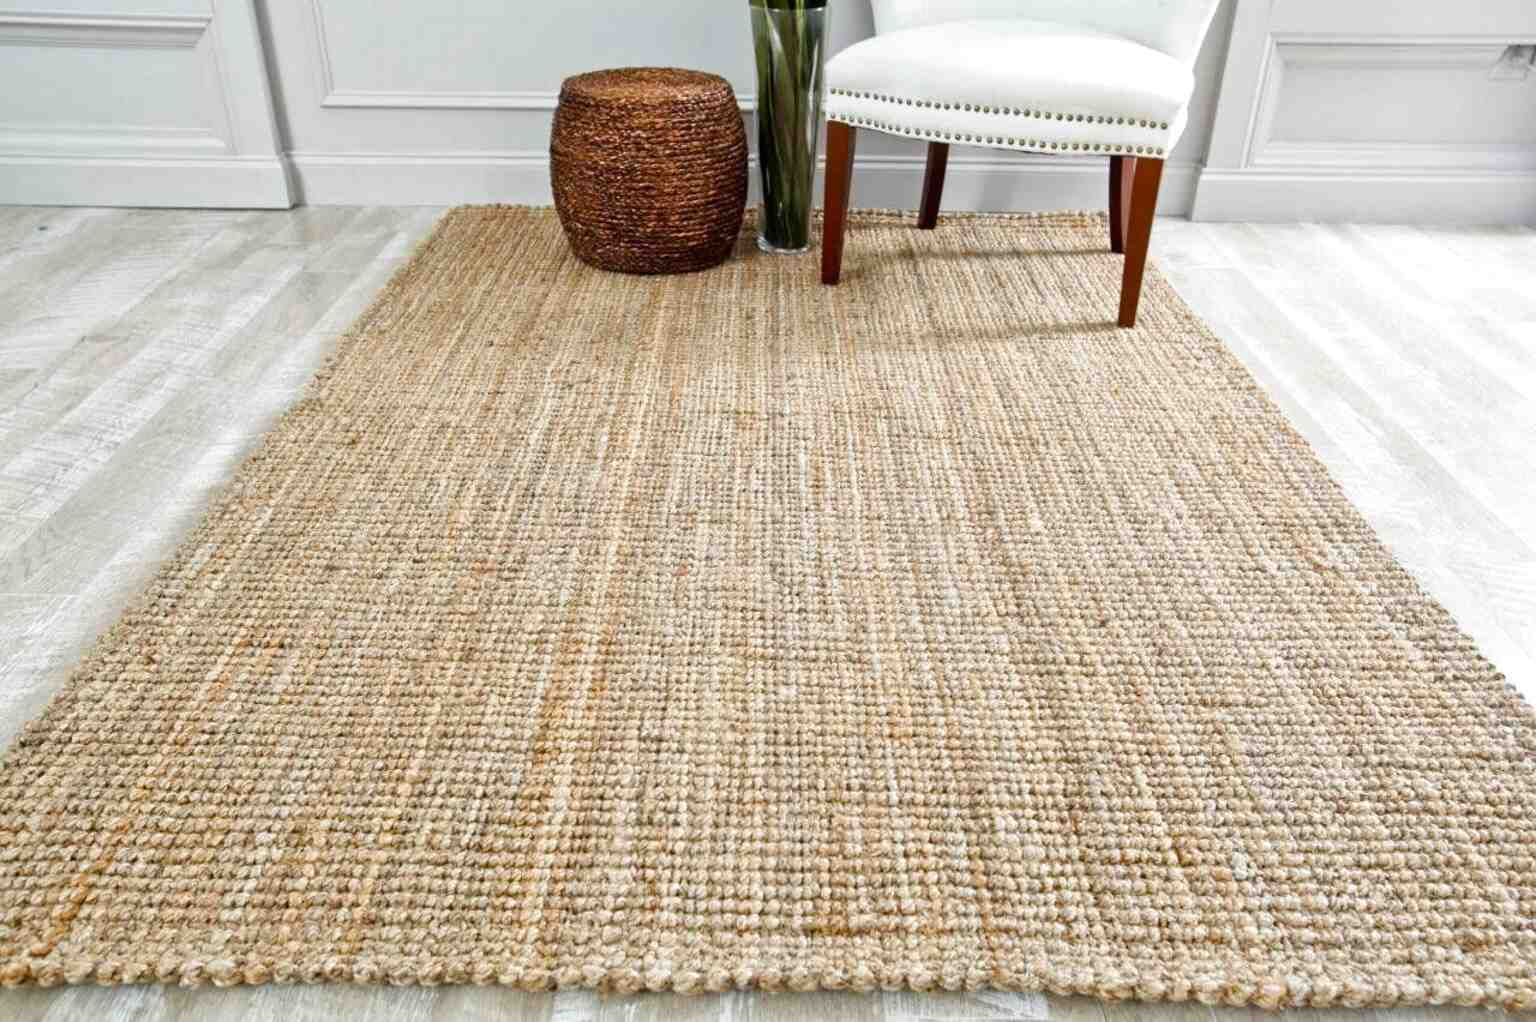 Large Jute Rug For Sale In Uk 10 Used Large Jute Rugs